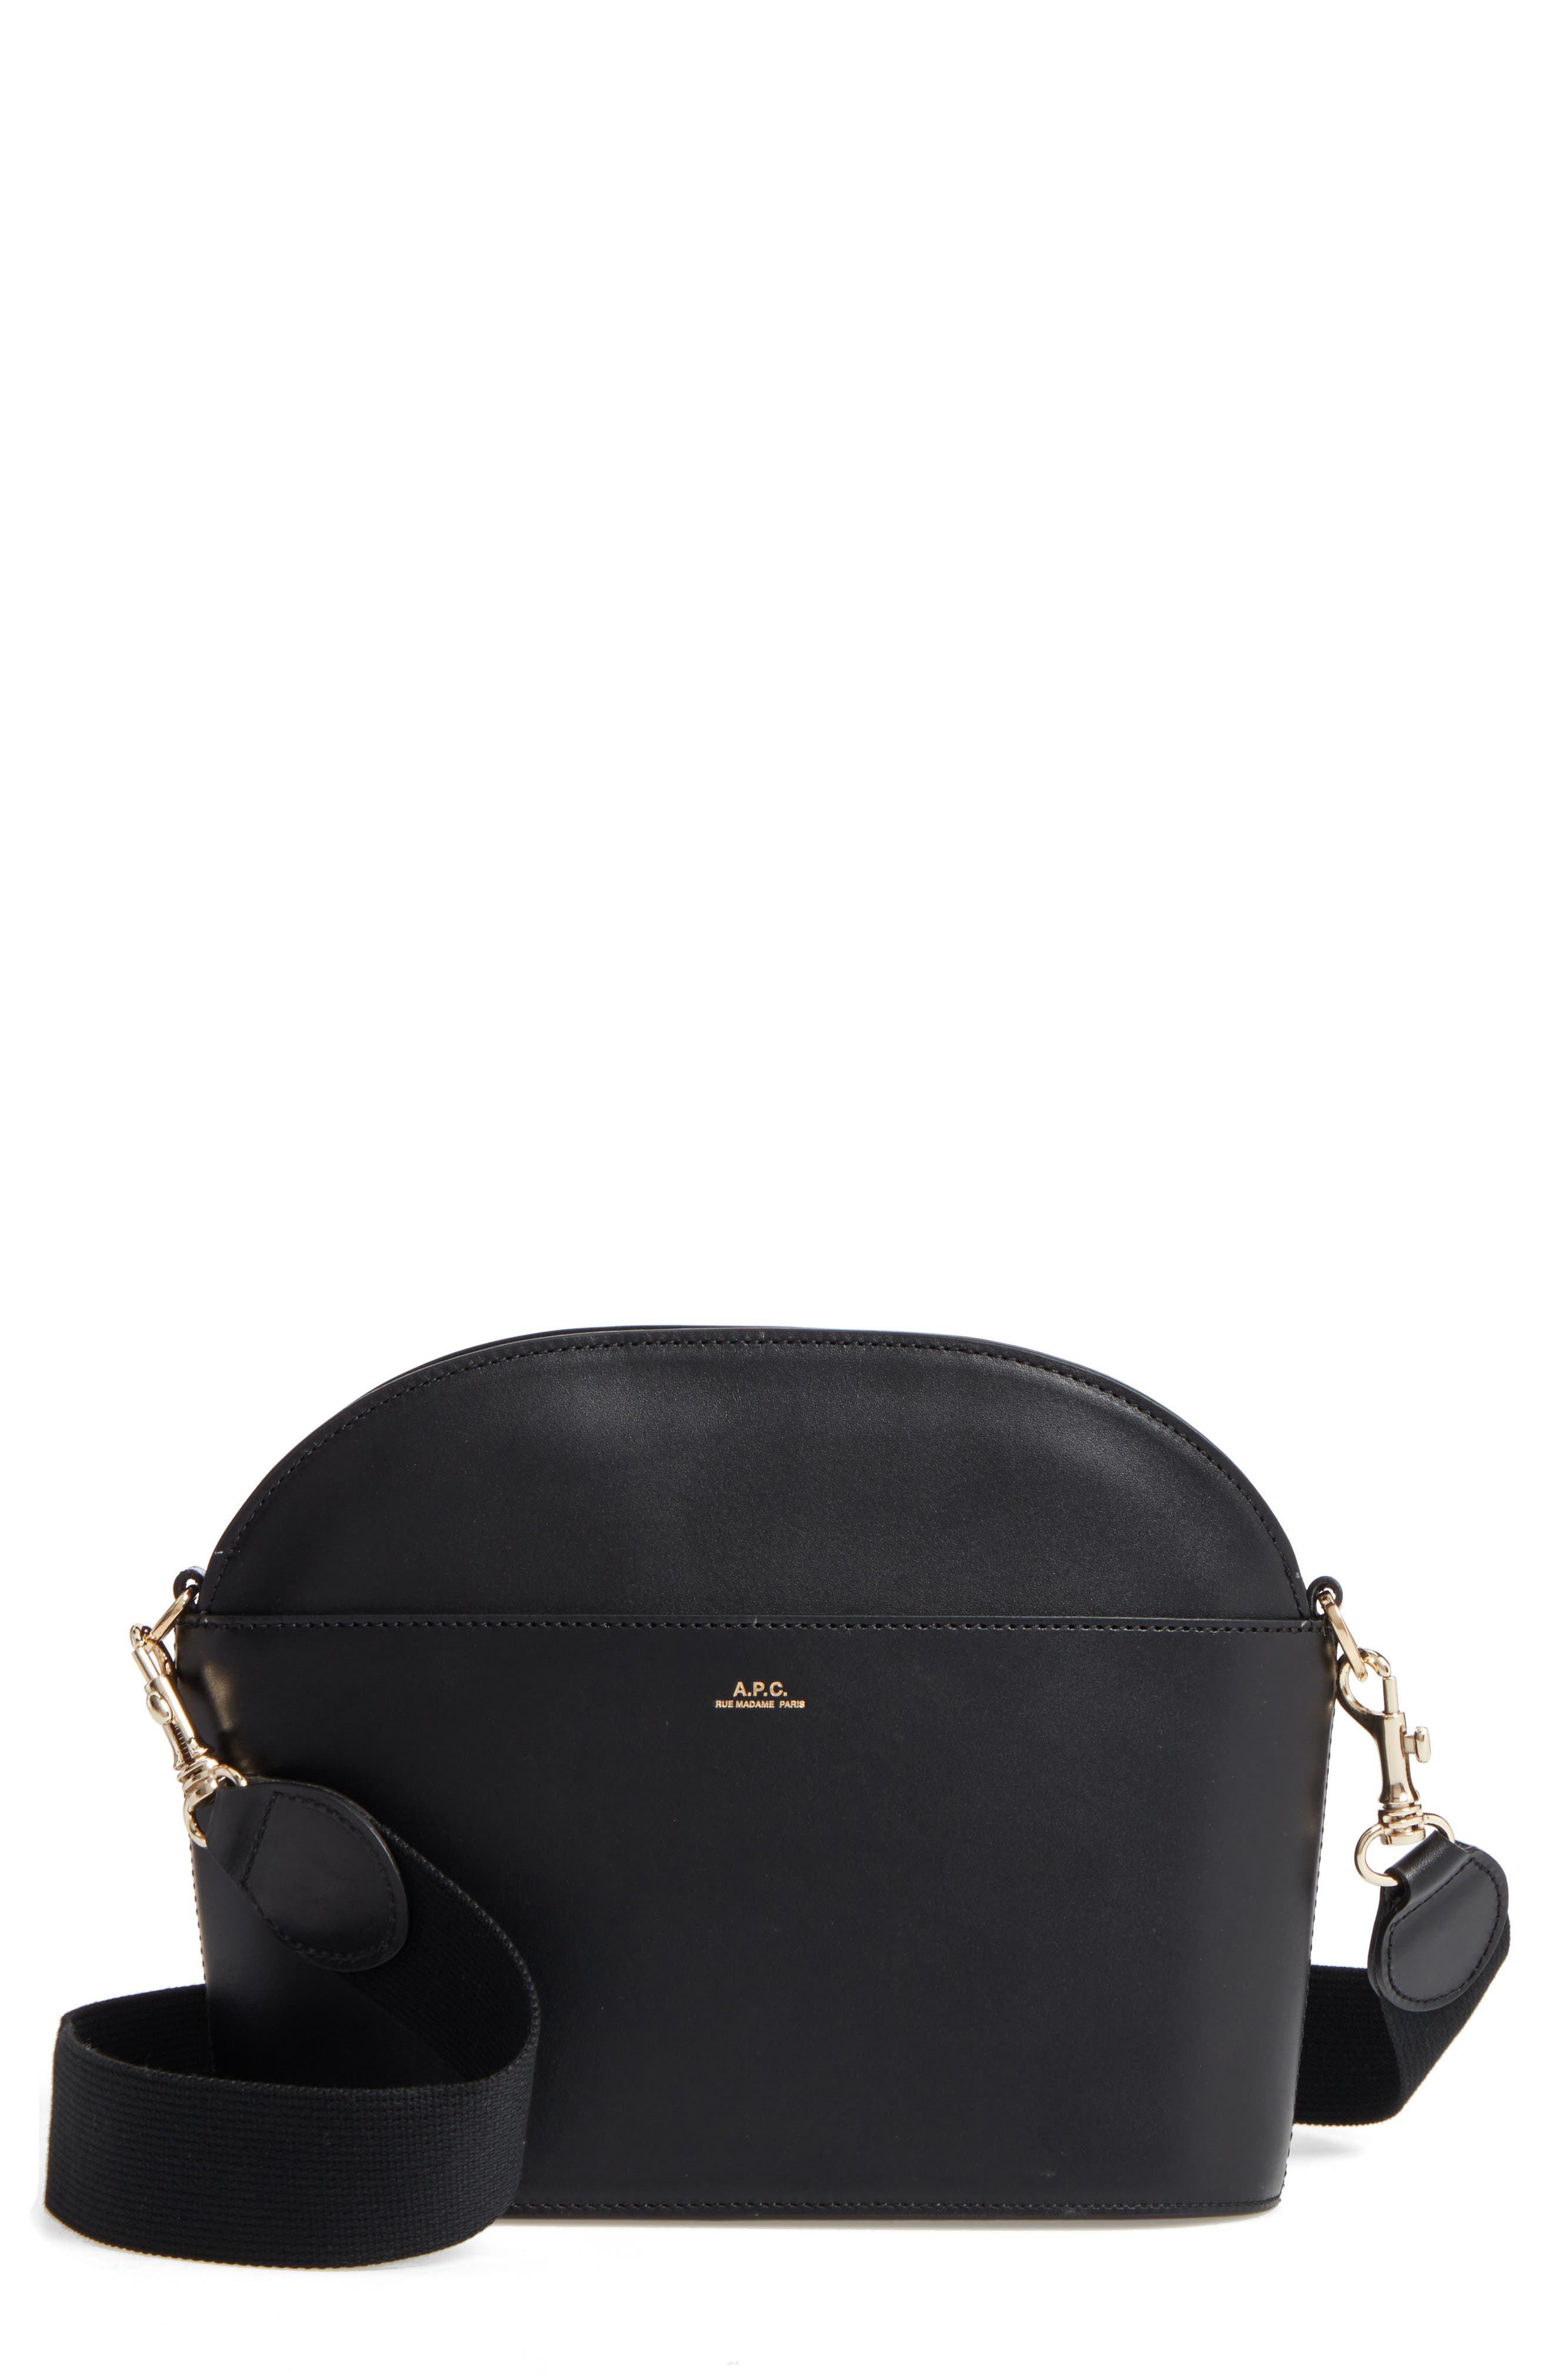 A.P.C. Gabrielle Leather Shoulder Bag